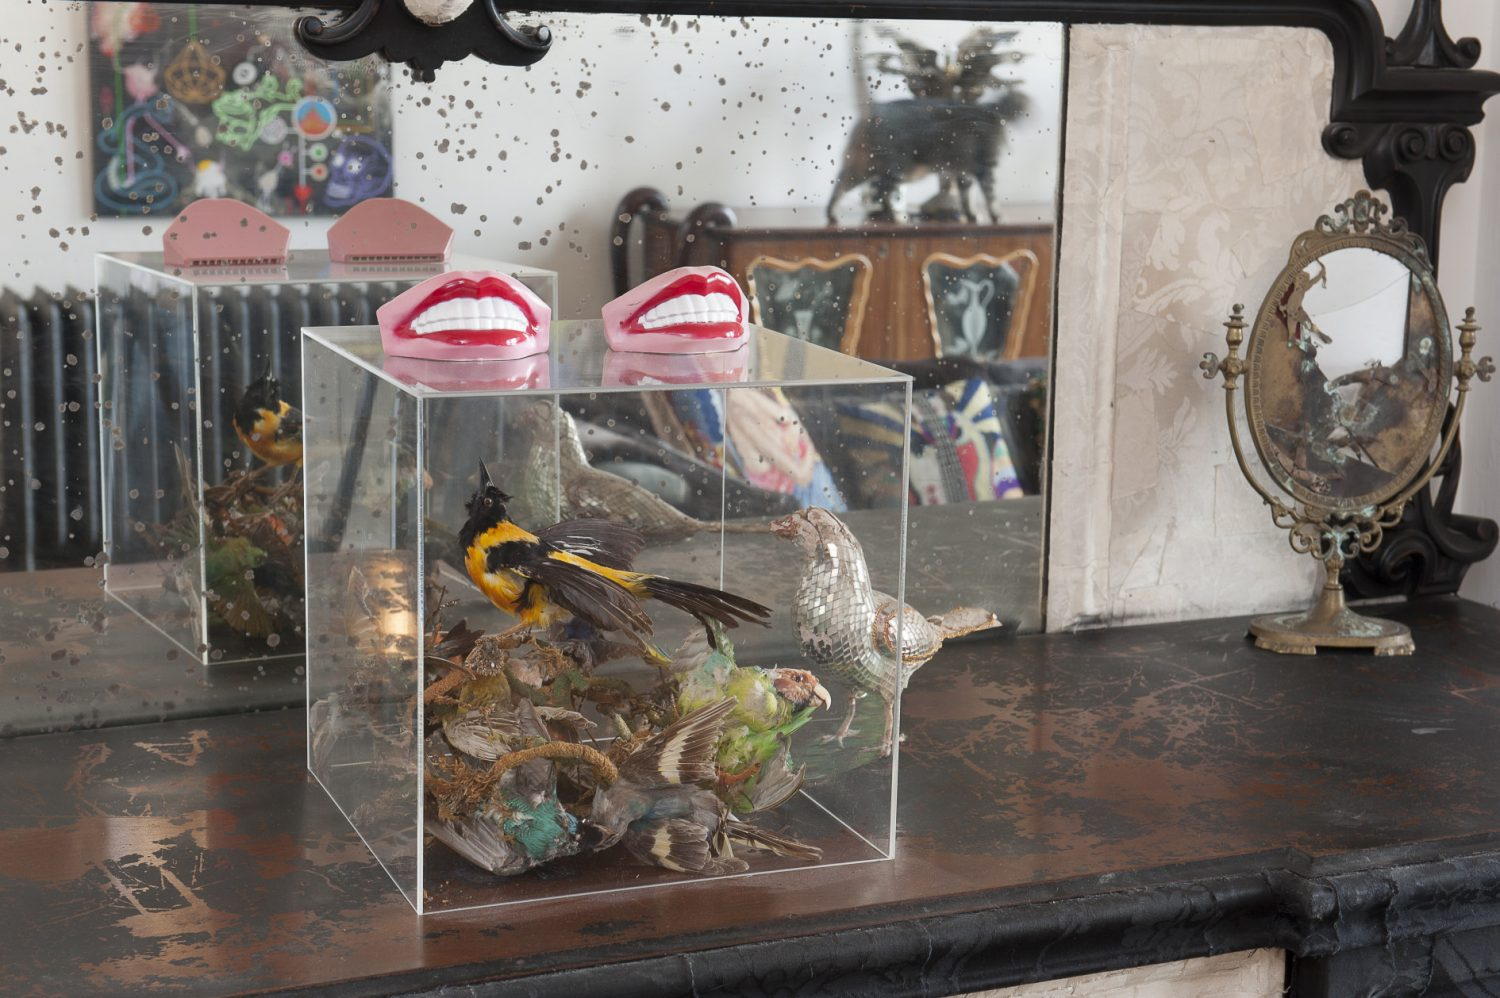 A pair of toothy plastic mouth harmonicas sit atop a perspex box, home to a tangle of taxidermy birds A pair of toothy plastic mouth harmonicas sit atop a perspex box, home to a tangle of taxidermy birds